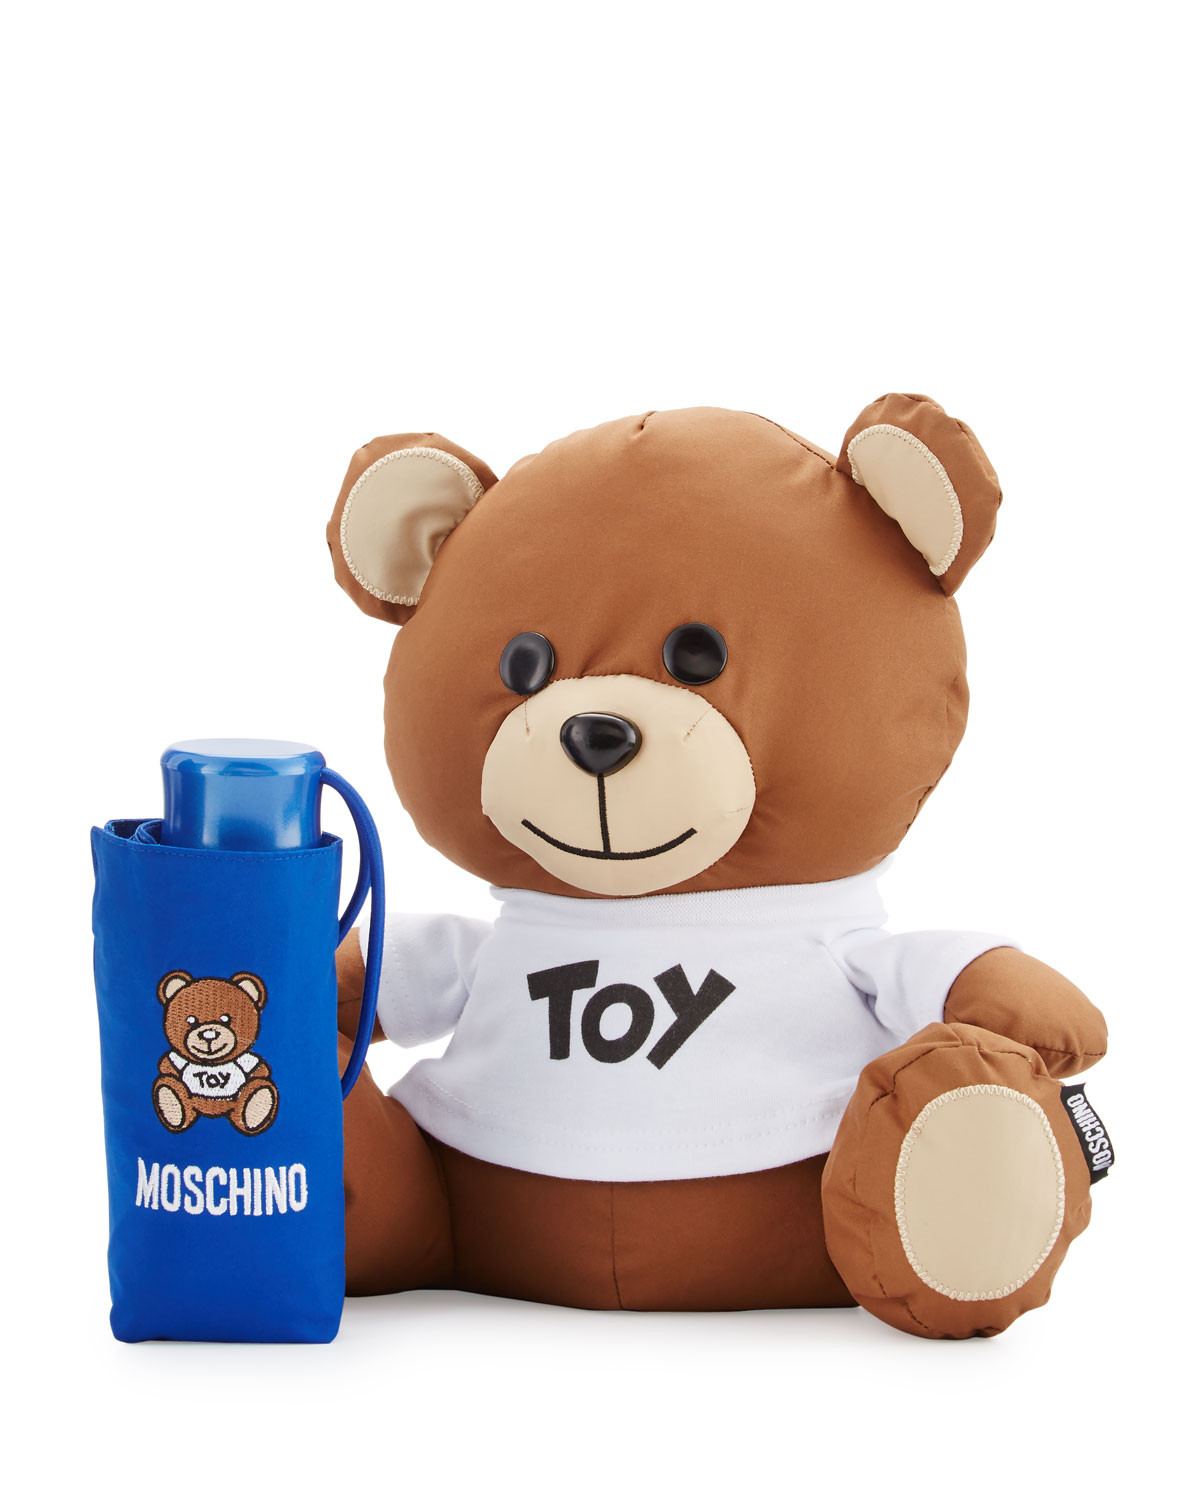 Moschino Teddy Bear W Super Mini Umbrella Neiman Marcus